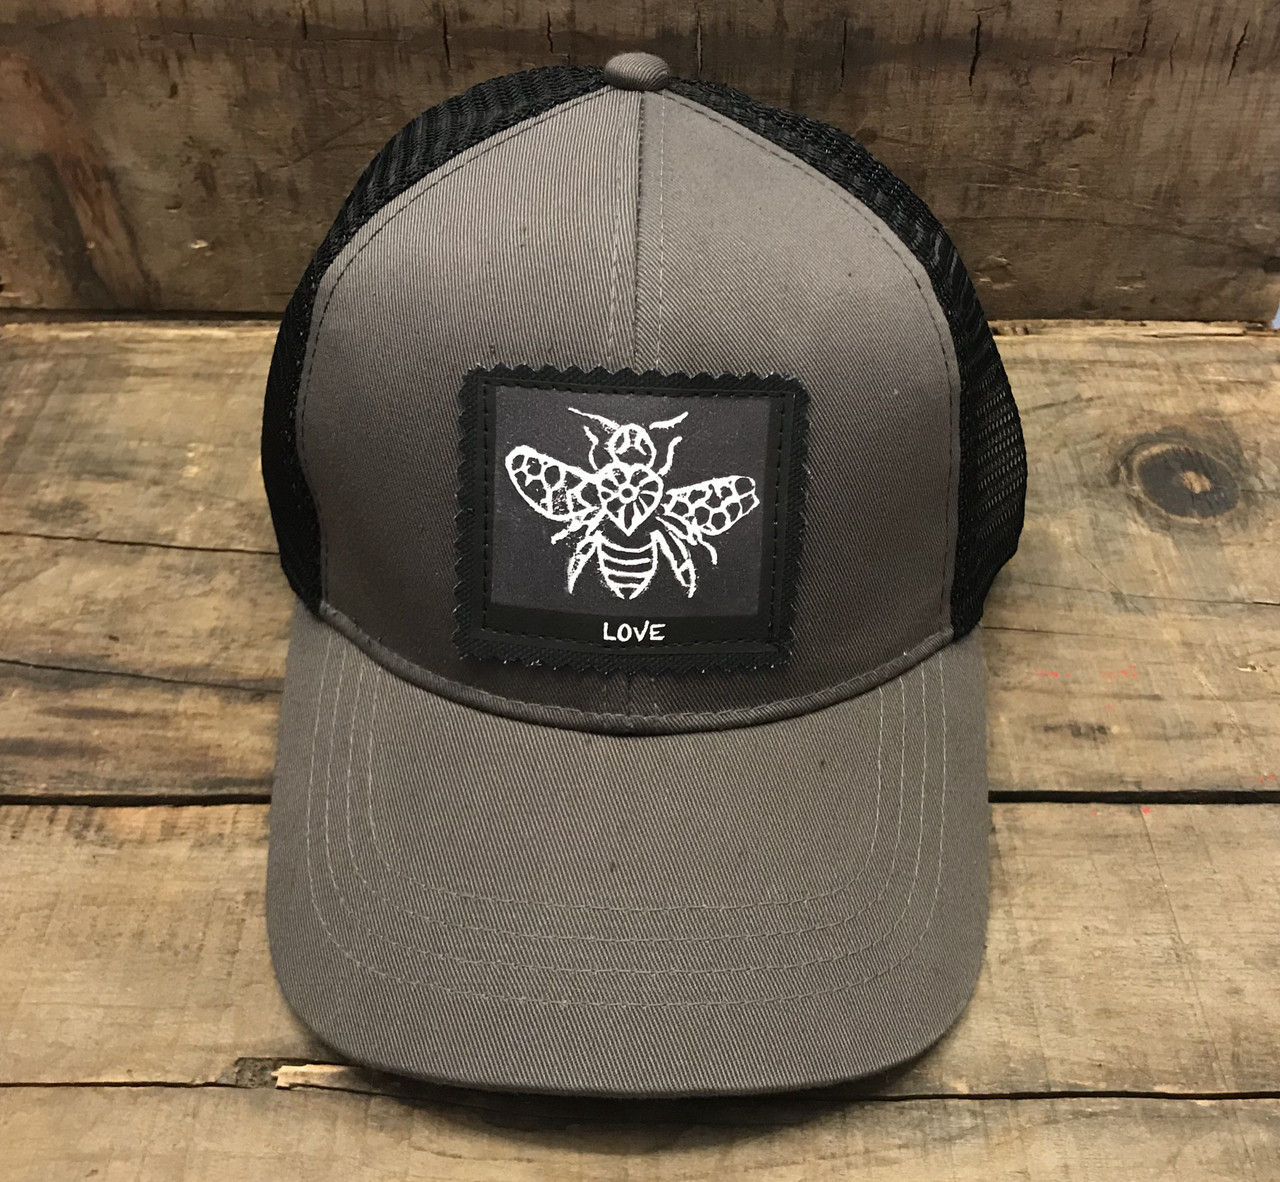 bee love charcoal hat  39715.1522016021.jpg c 2 imbypass on 7a53ea89def